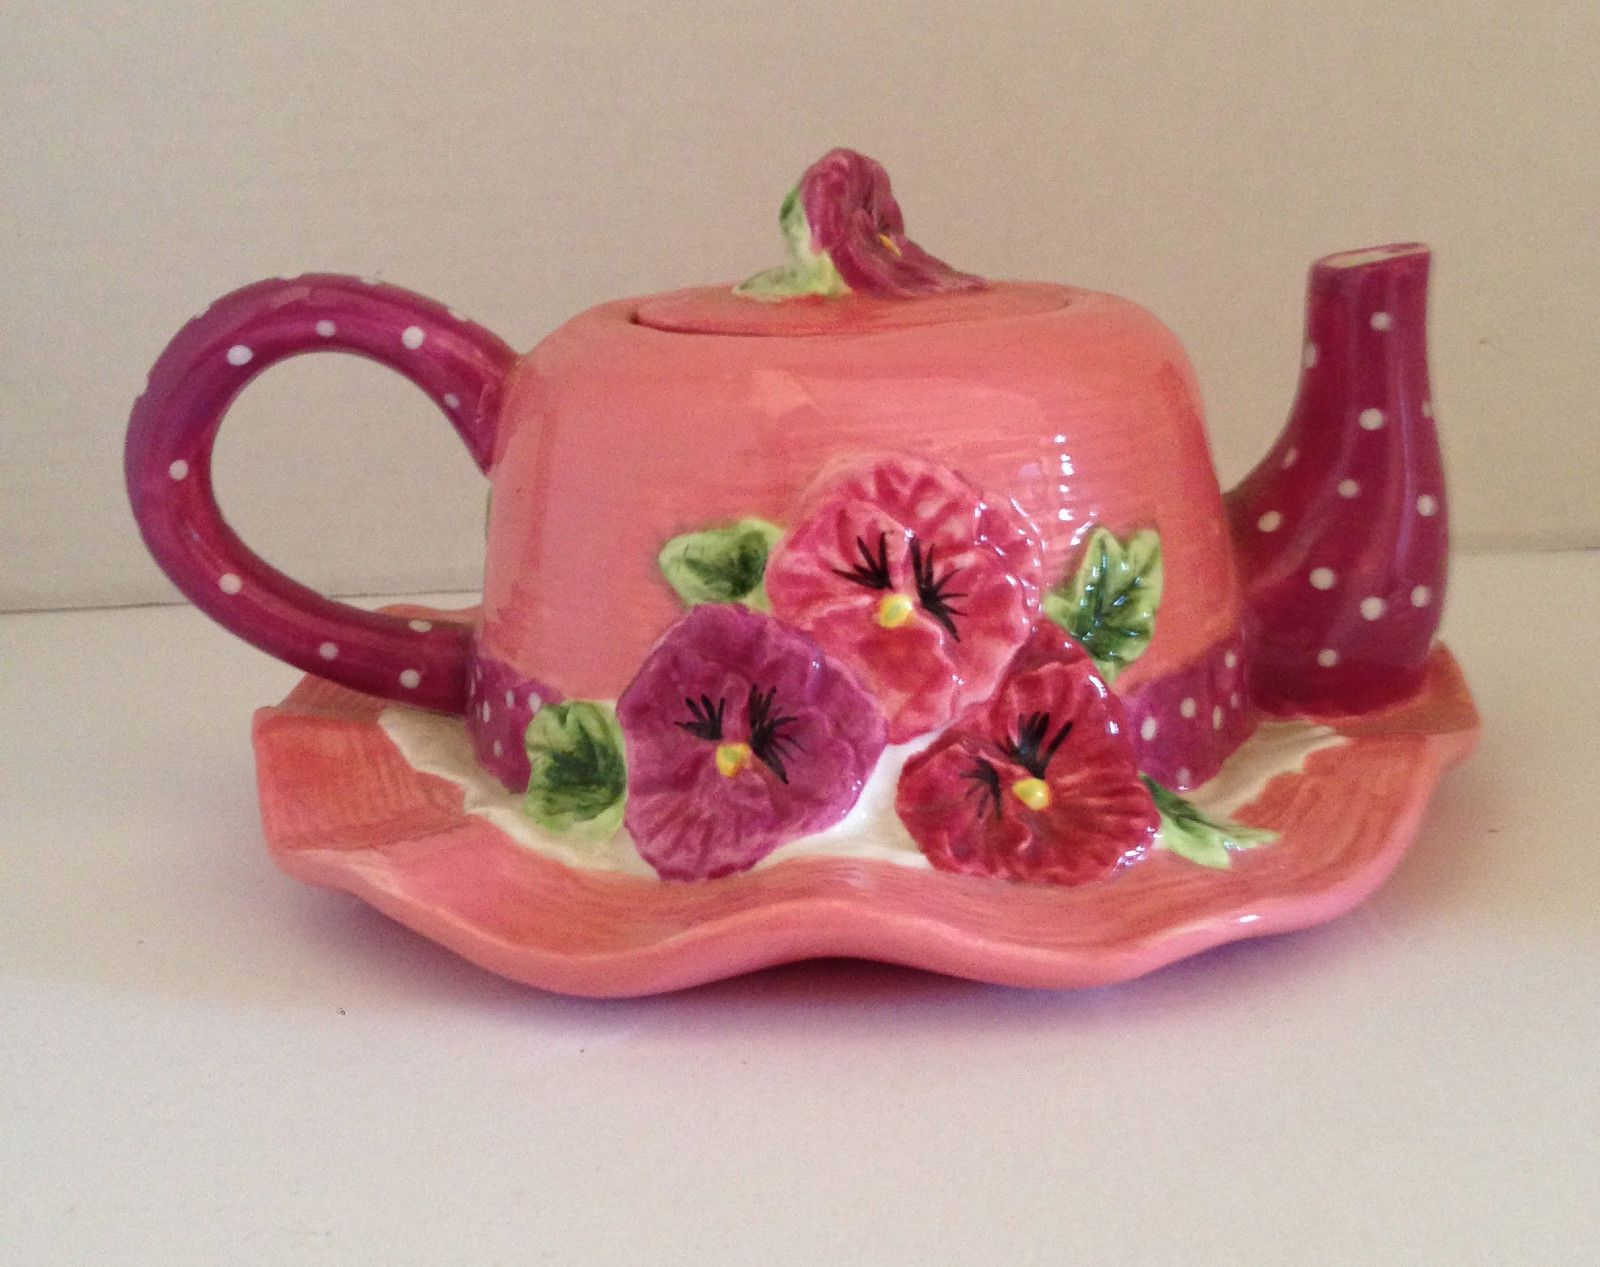 Seymour Mann Collezione Italiano Hand Painted Hand Crafted Ceramic Hat Teapot picclick.com